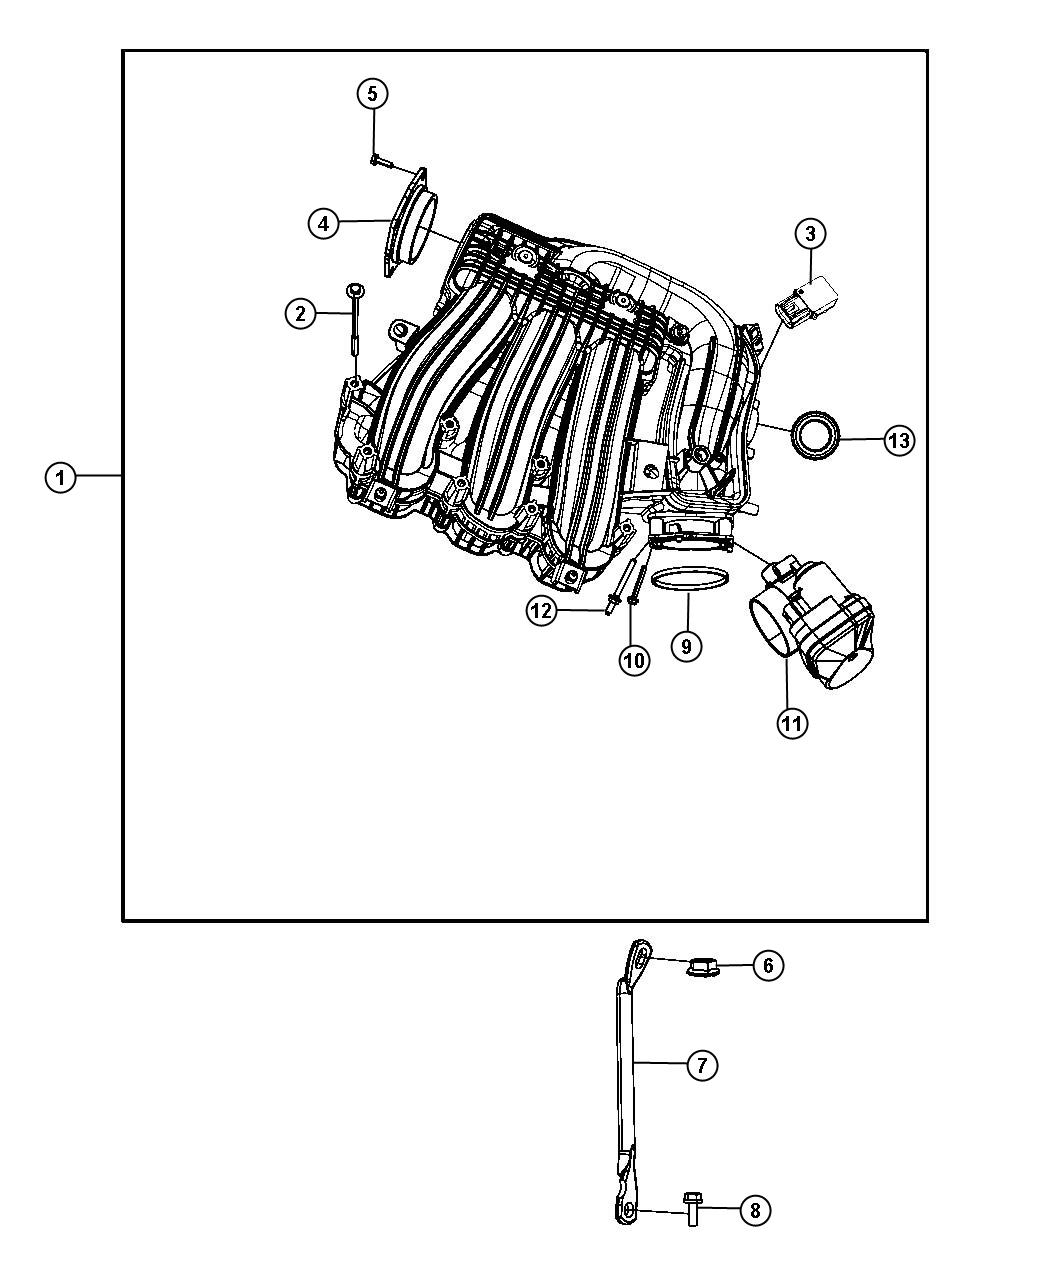 klr 650 engine parts diagram  klr  free engine image for